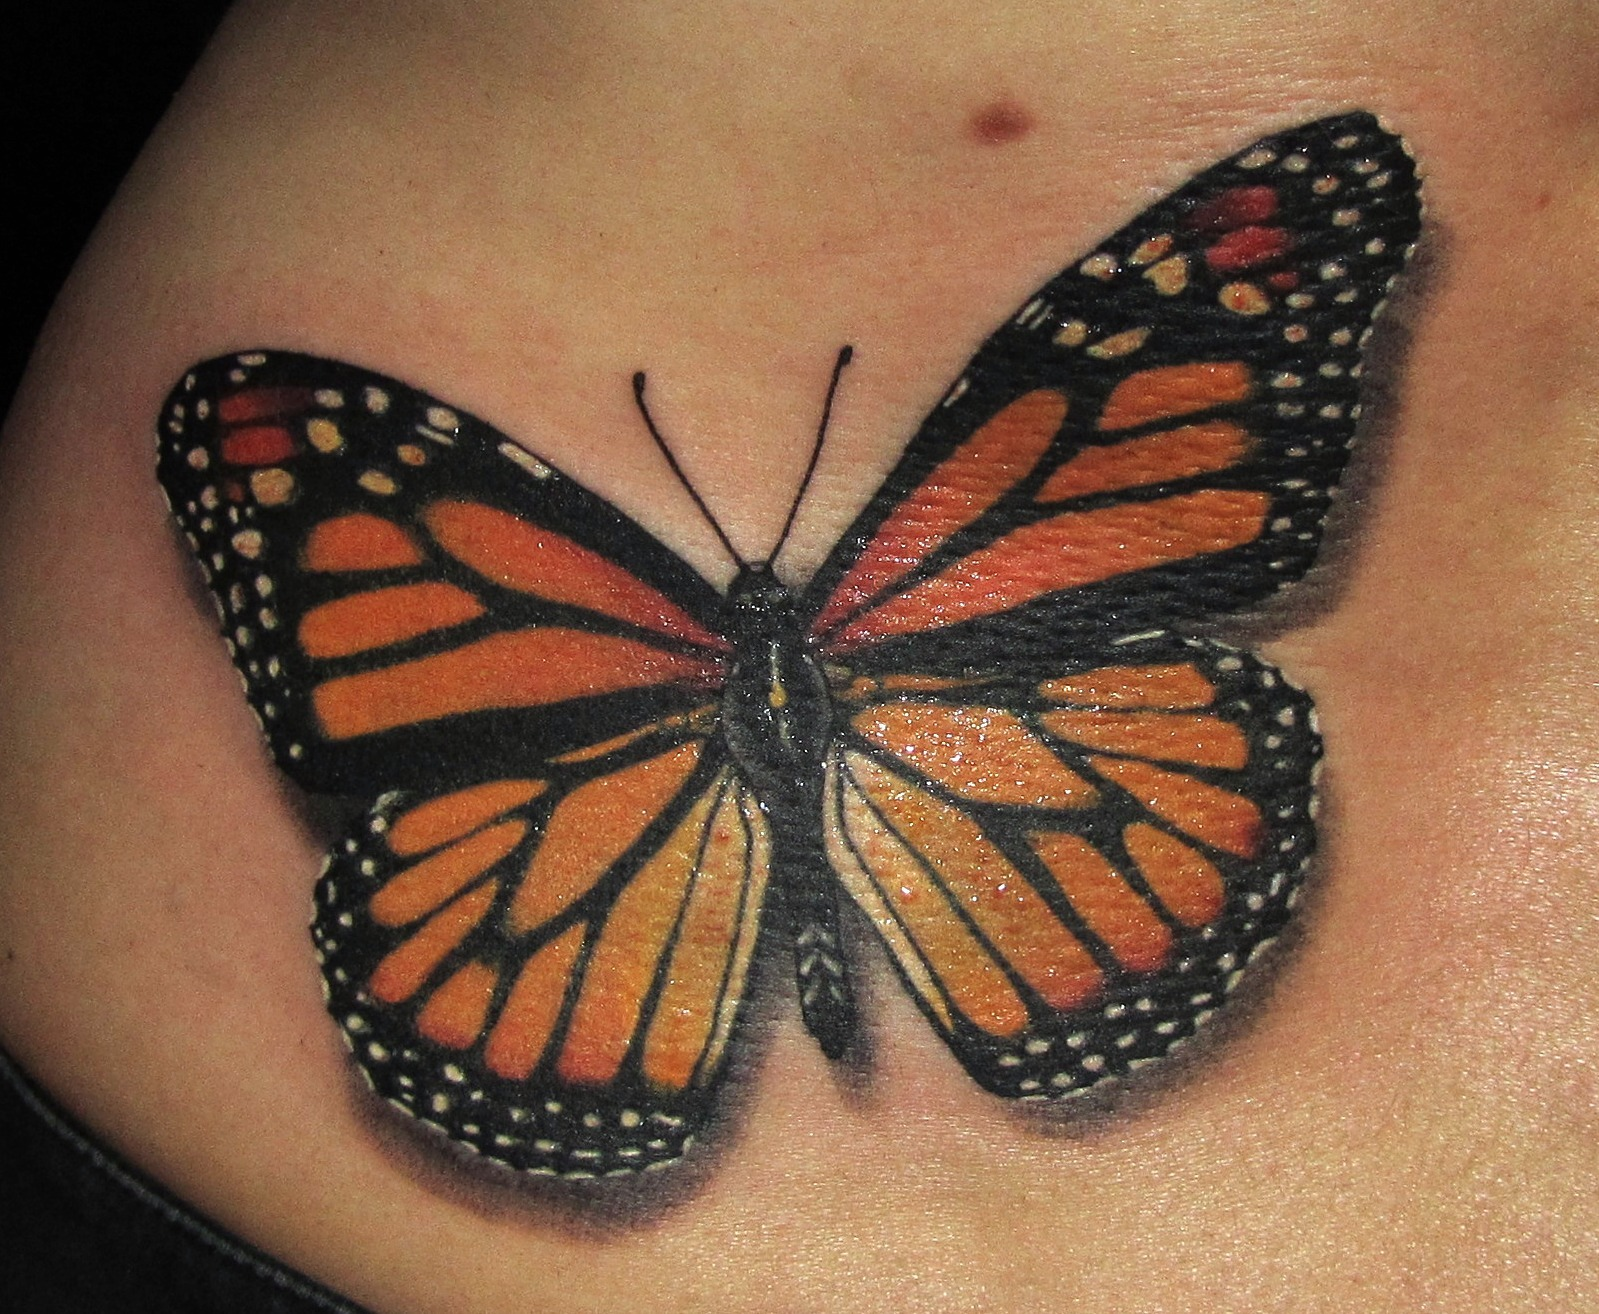 Joseph scissorhands butterfly tattoos for Images of butterfly tattoos